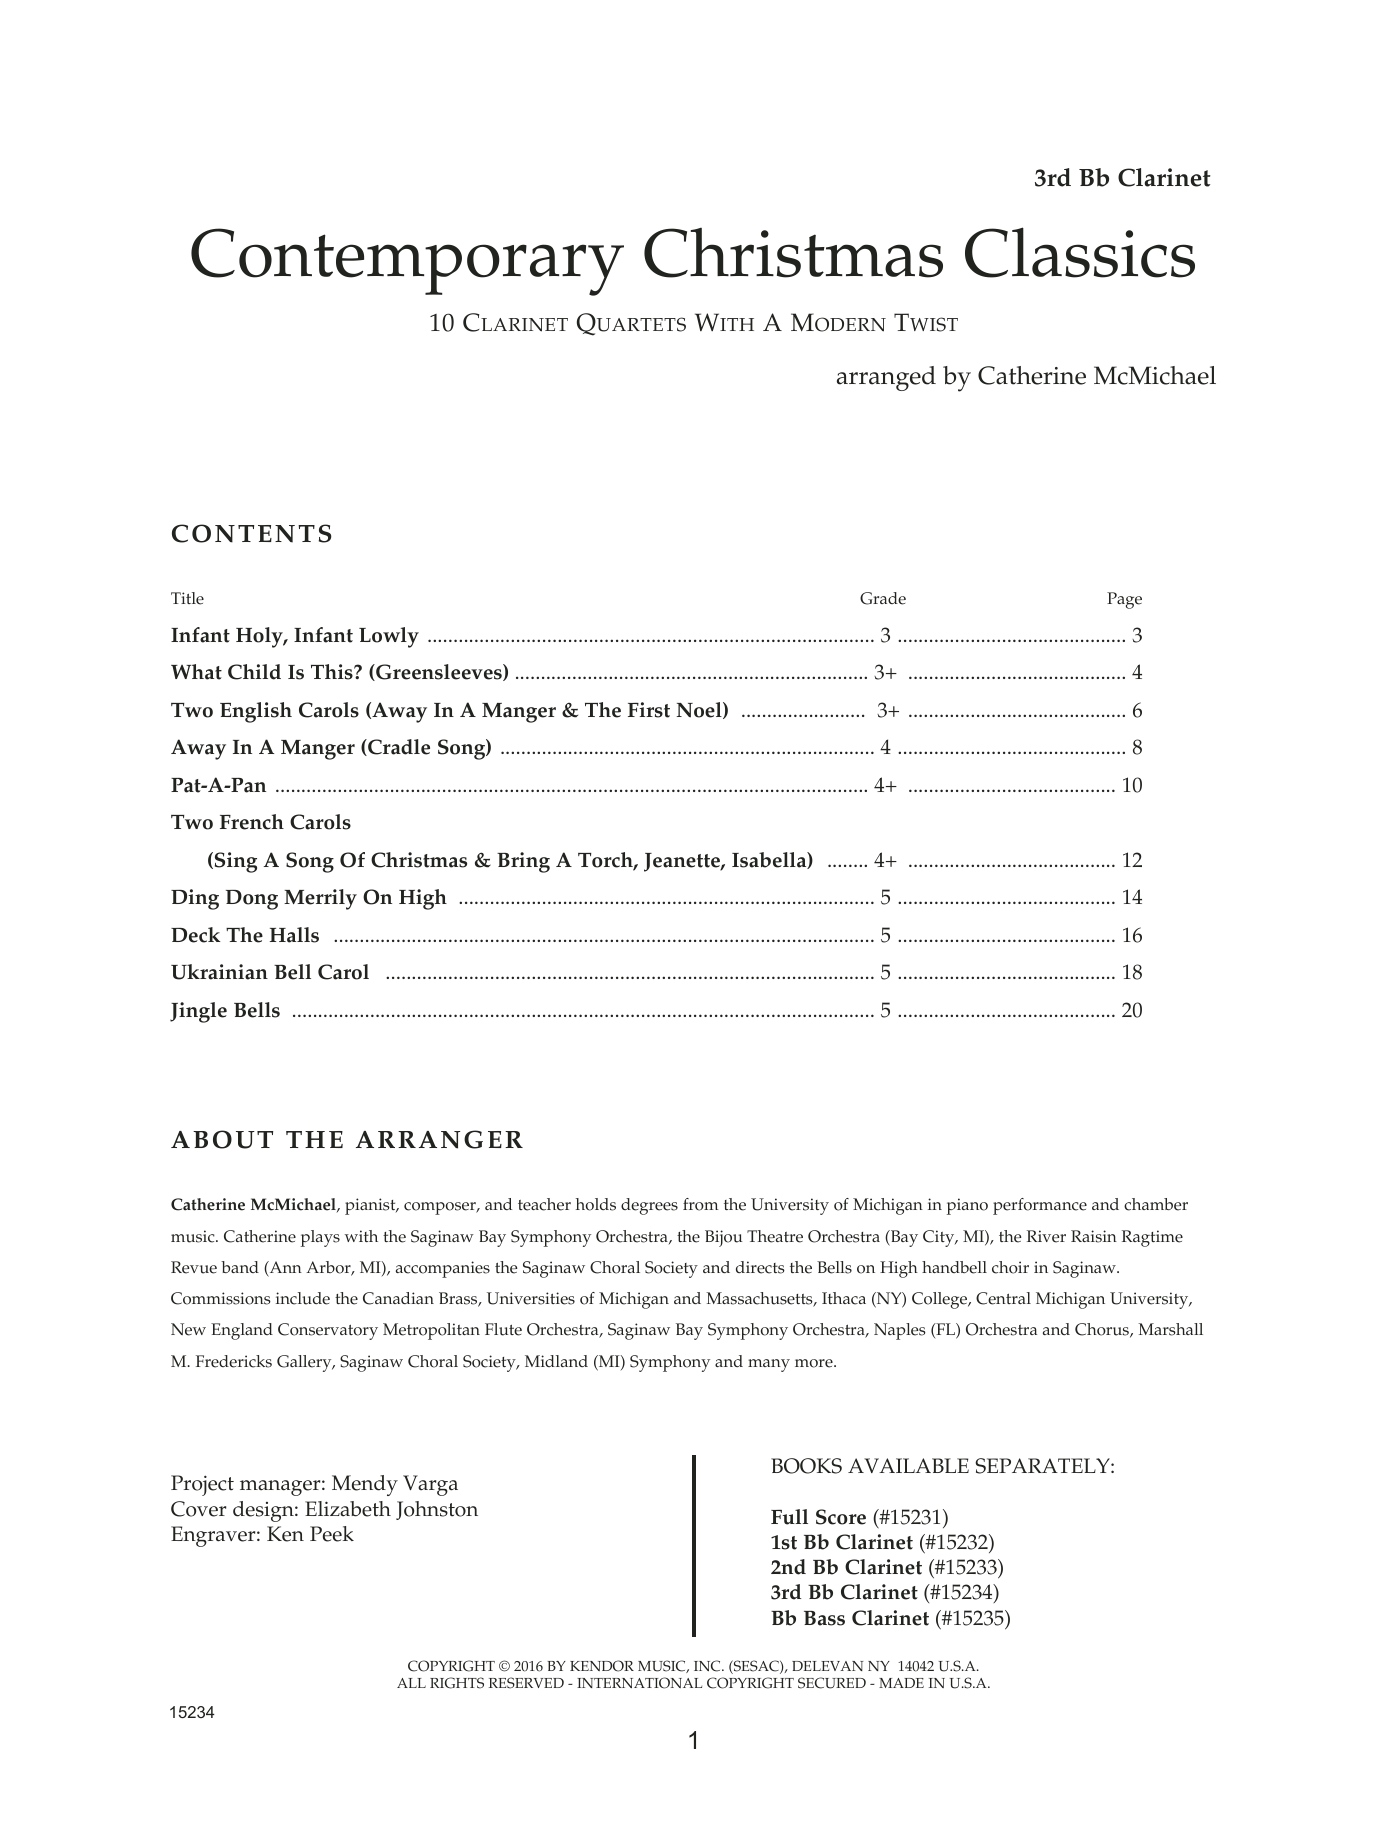 Catherine McMichael Contemporary Christmas Classics - 3rd Bb Clarinet sheet music notes and chords. Download Printable PDF.